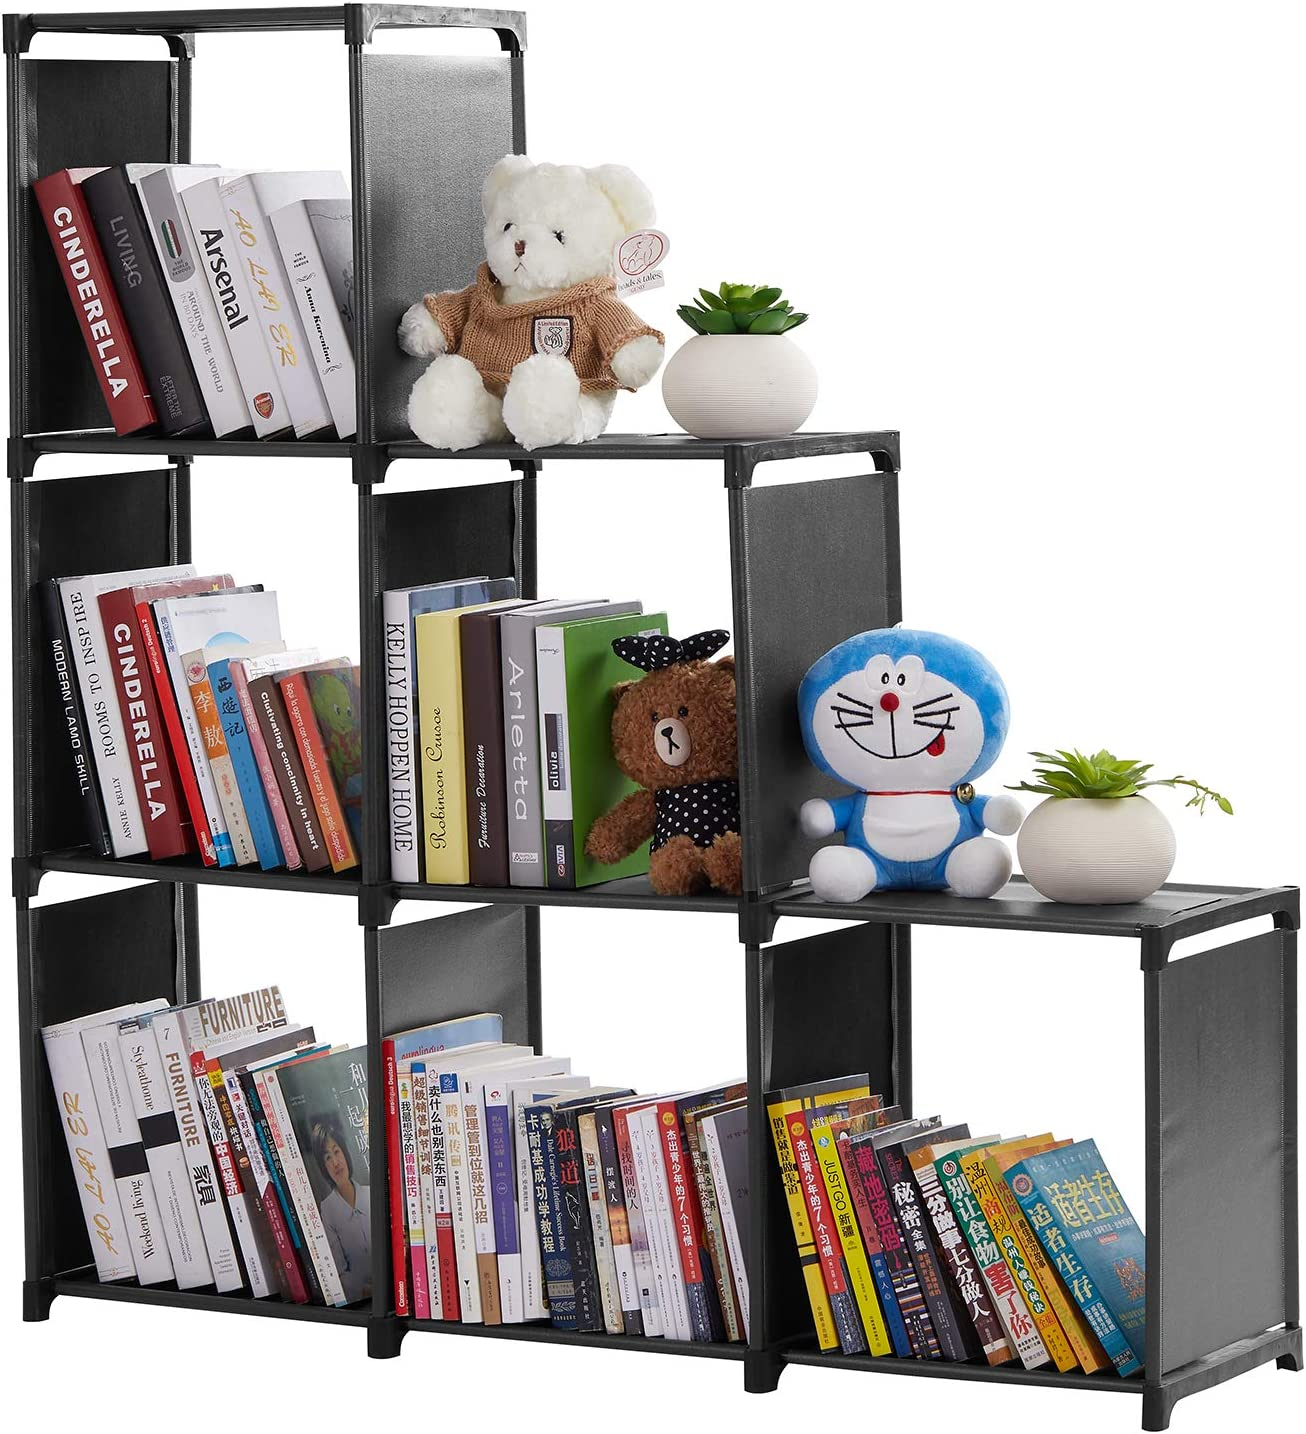 Cube Storage 6-Cube Storage Rack Staircase Organizer, DIY Storage Shelf, Bookcase 3-tier Cubes Cabinets for Bedroom Living Room, for Toys and Daily Necessities, Black